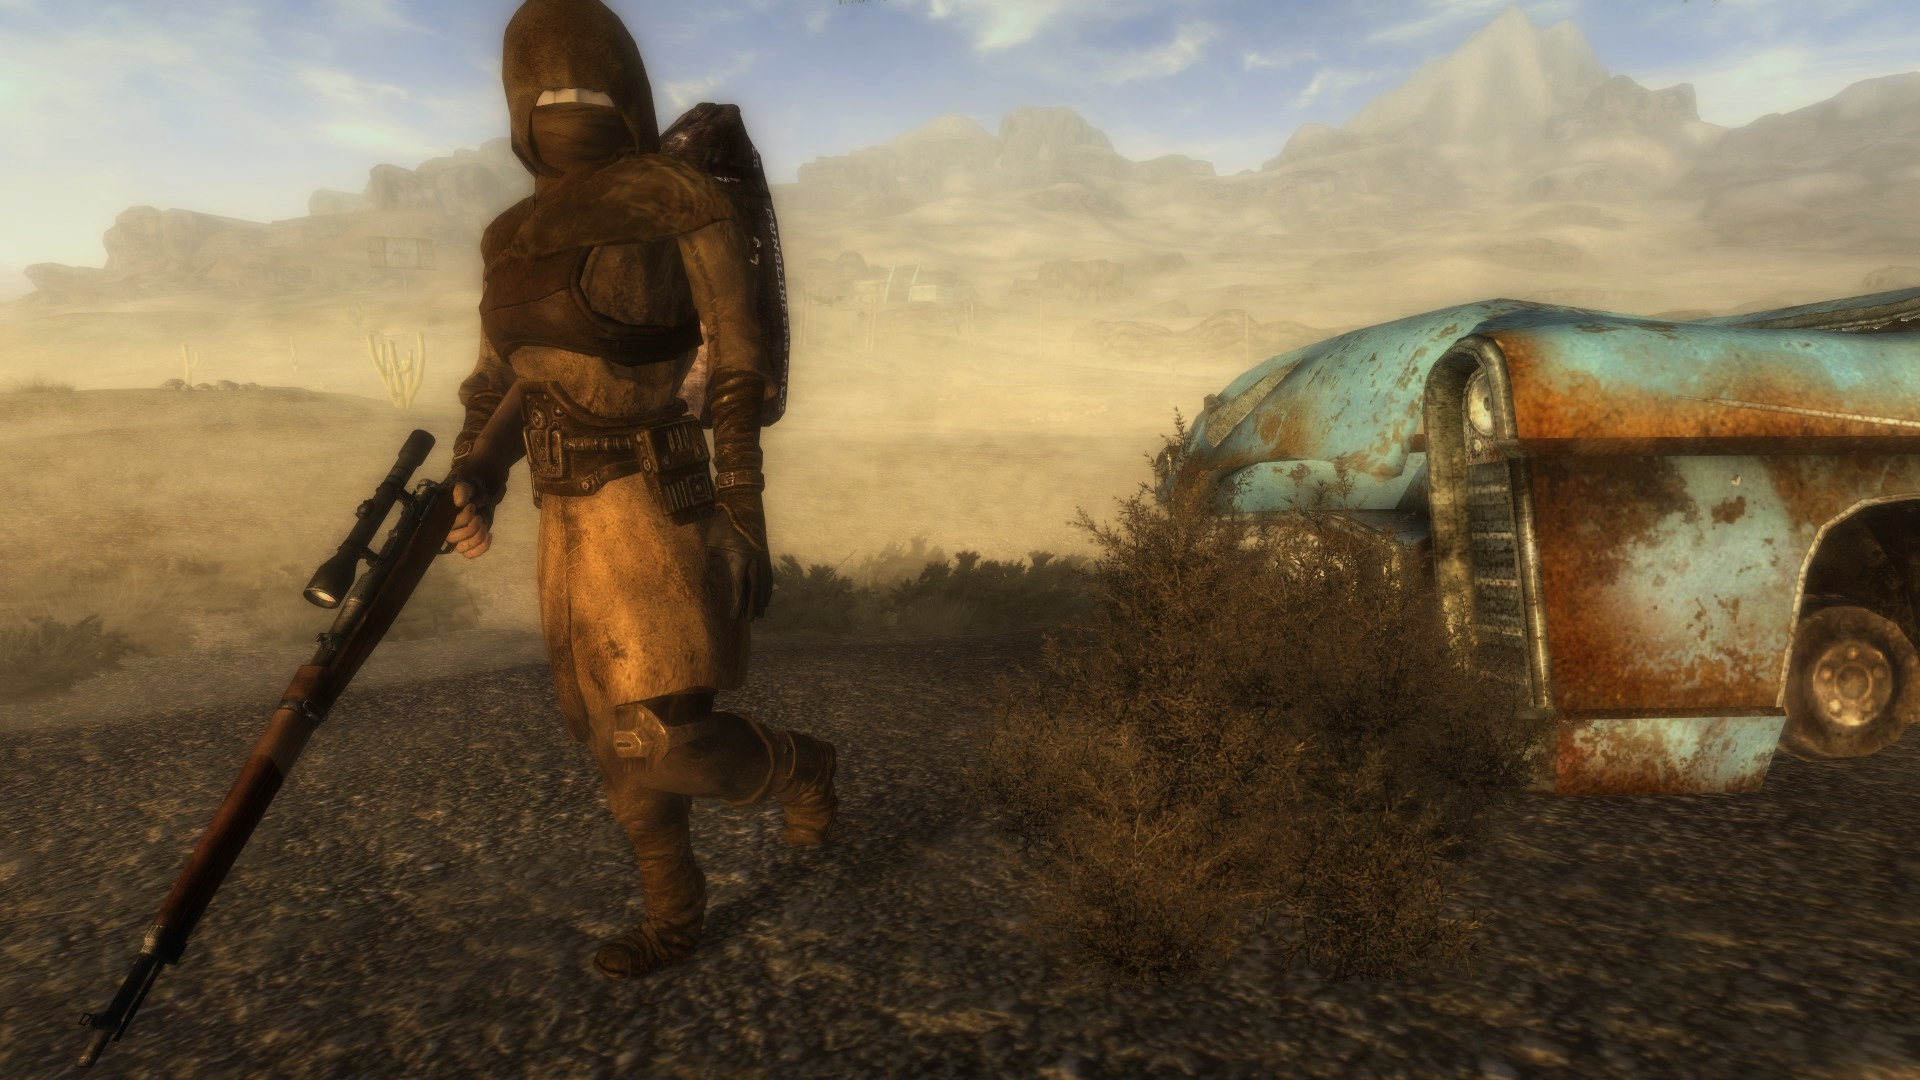 Wasteland Seeker Armor At Fallout New Vegas Mods And Community